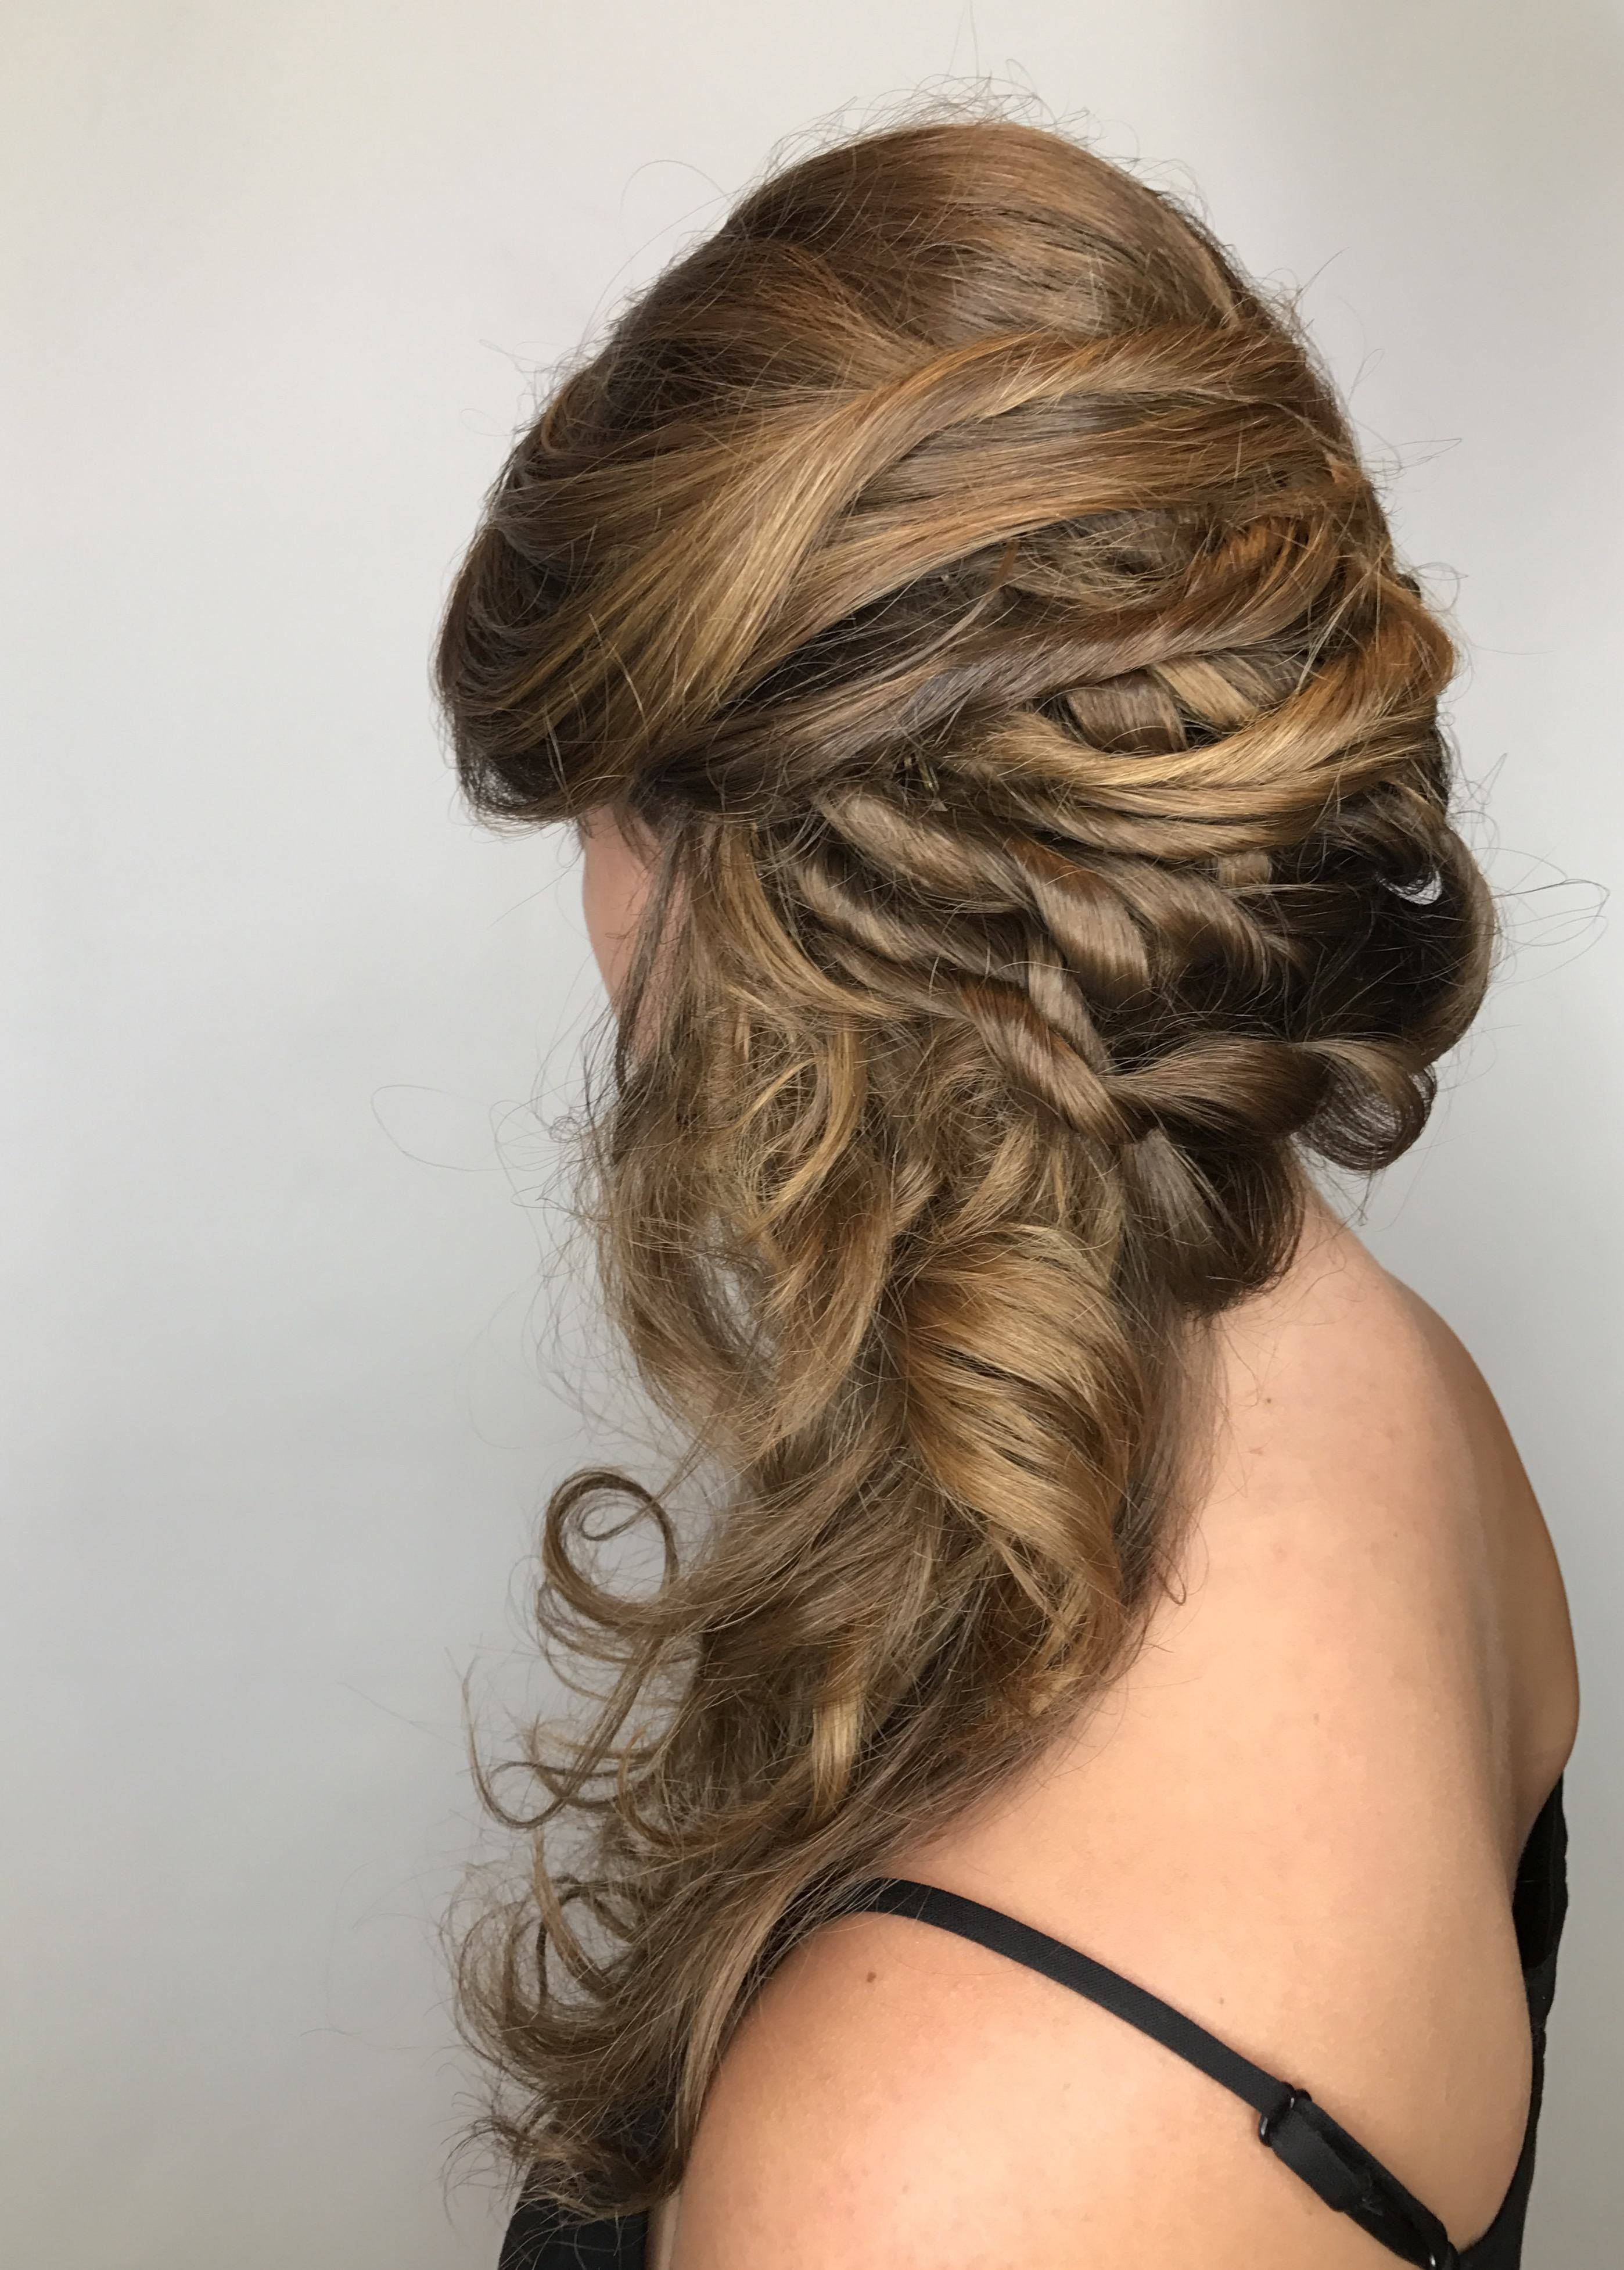 Hair Styling Services or Men and Women